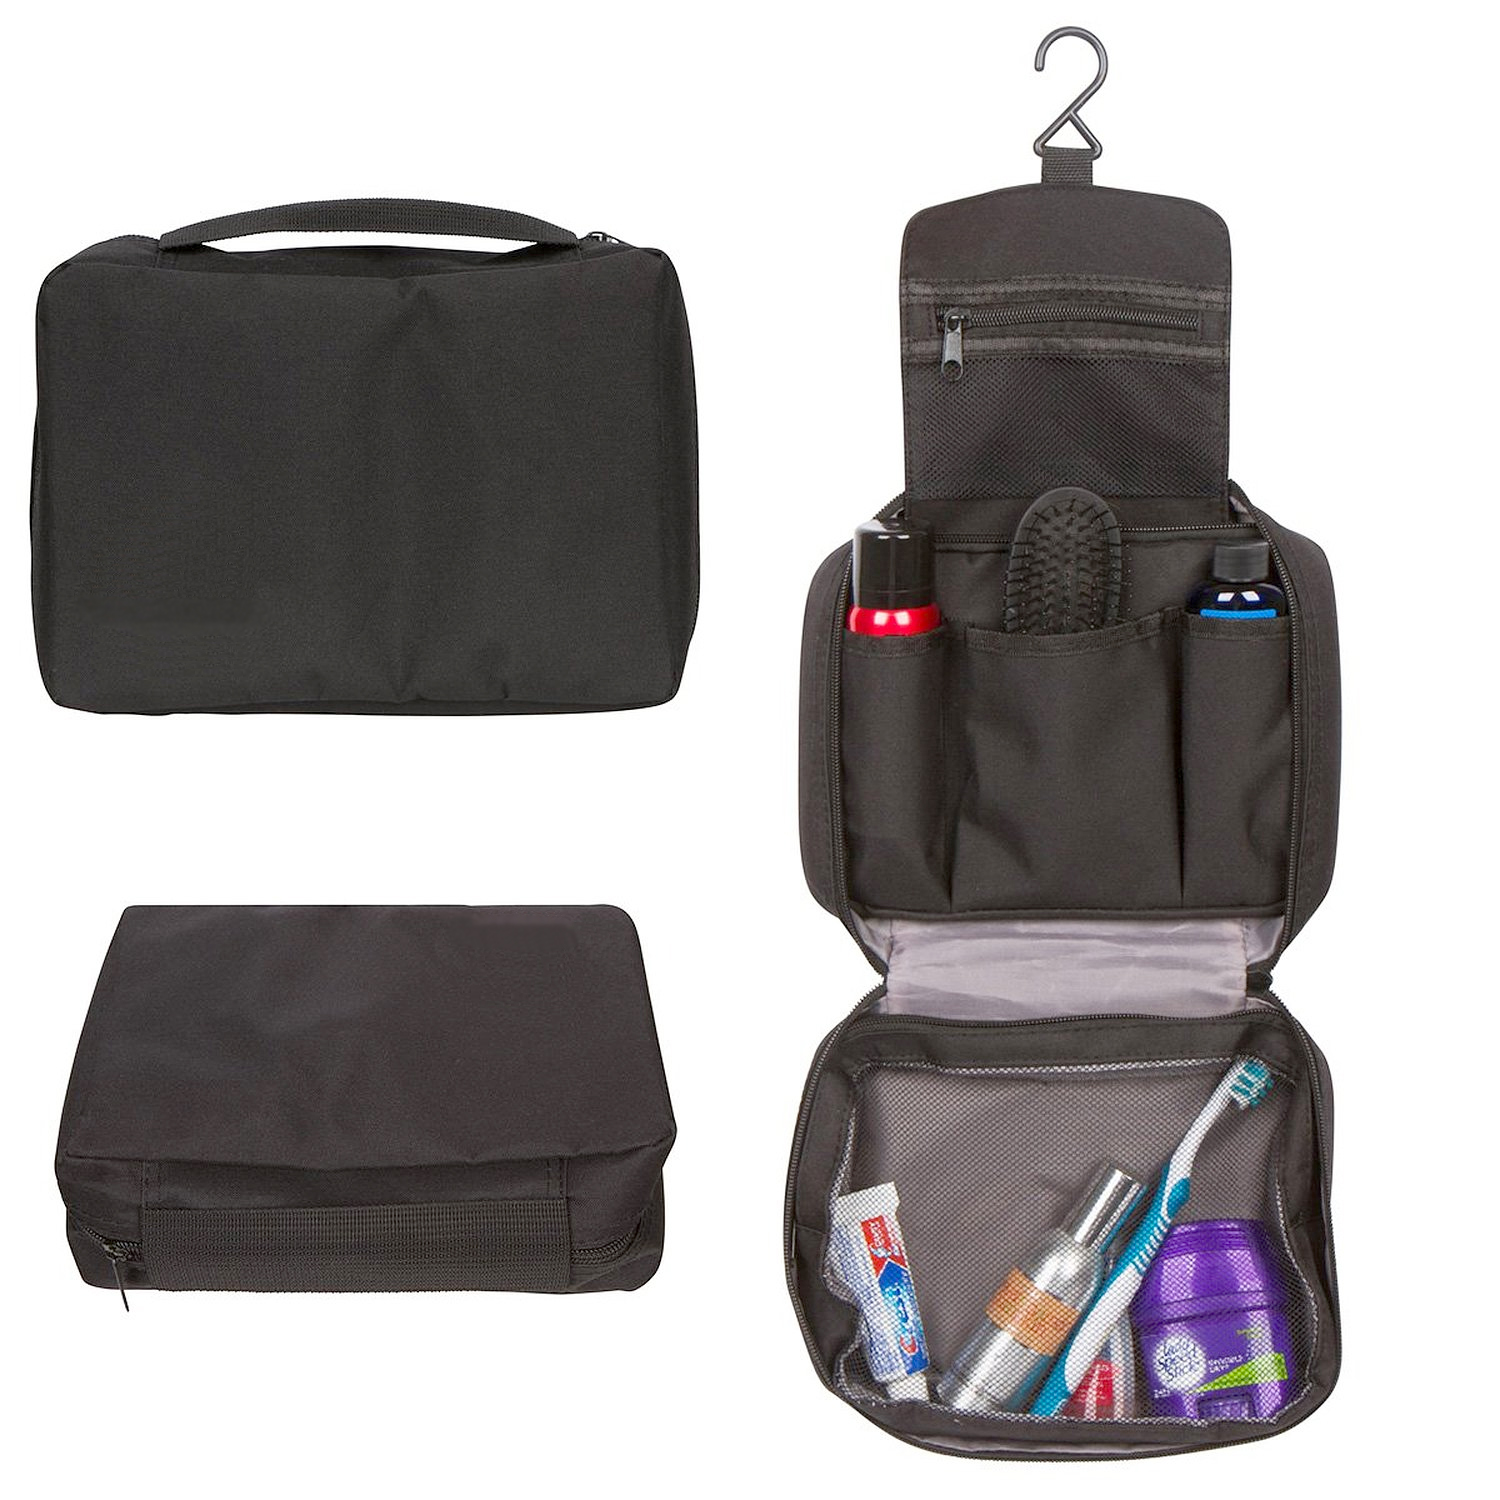 Family Size Toiletry Bag